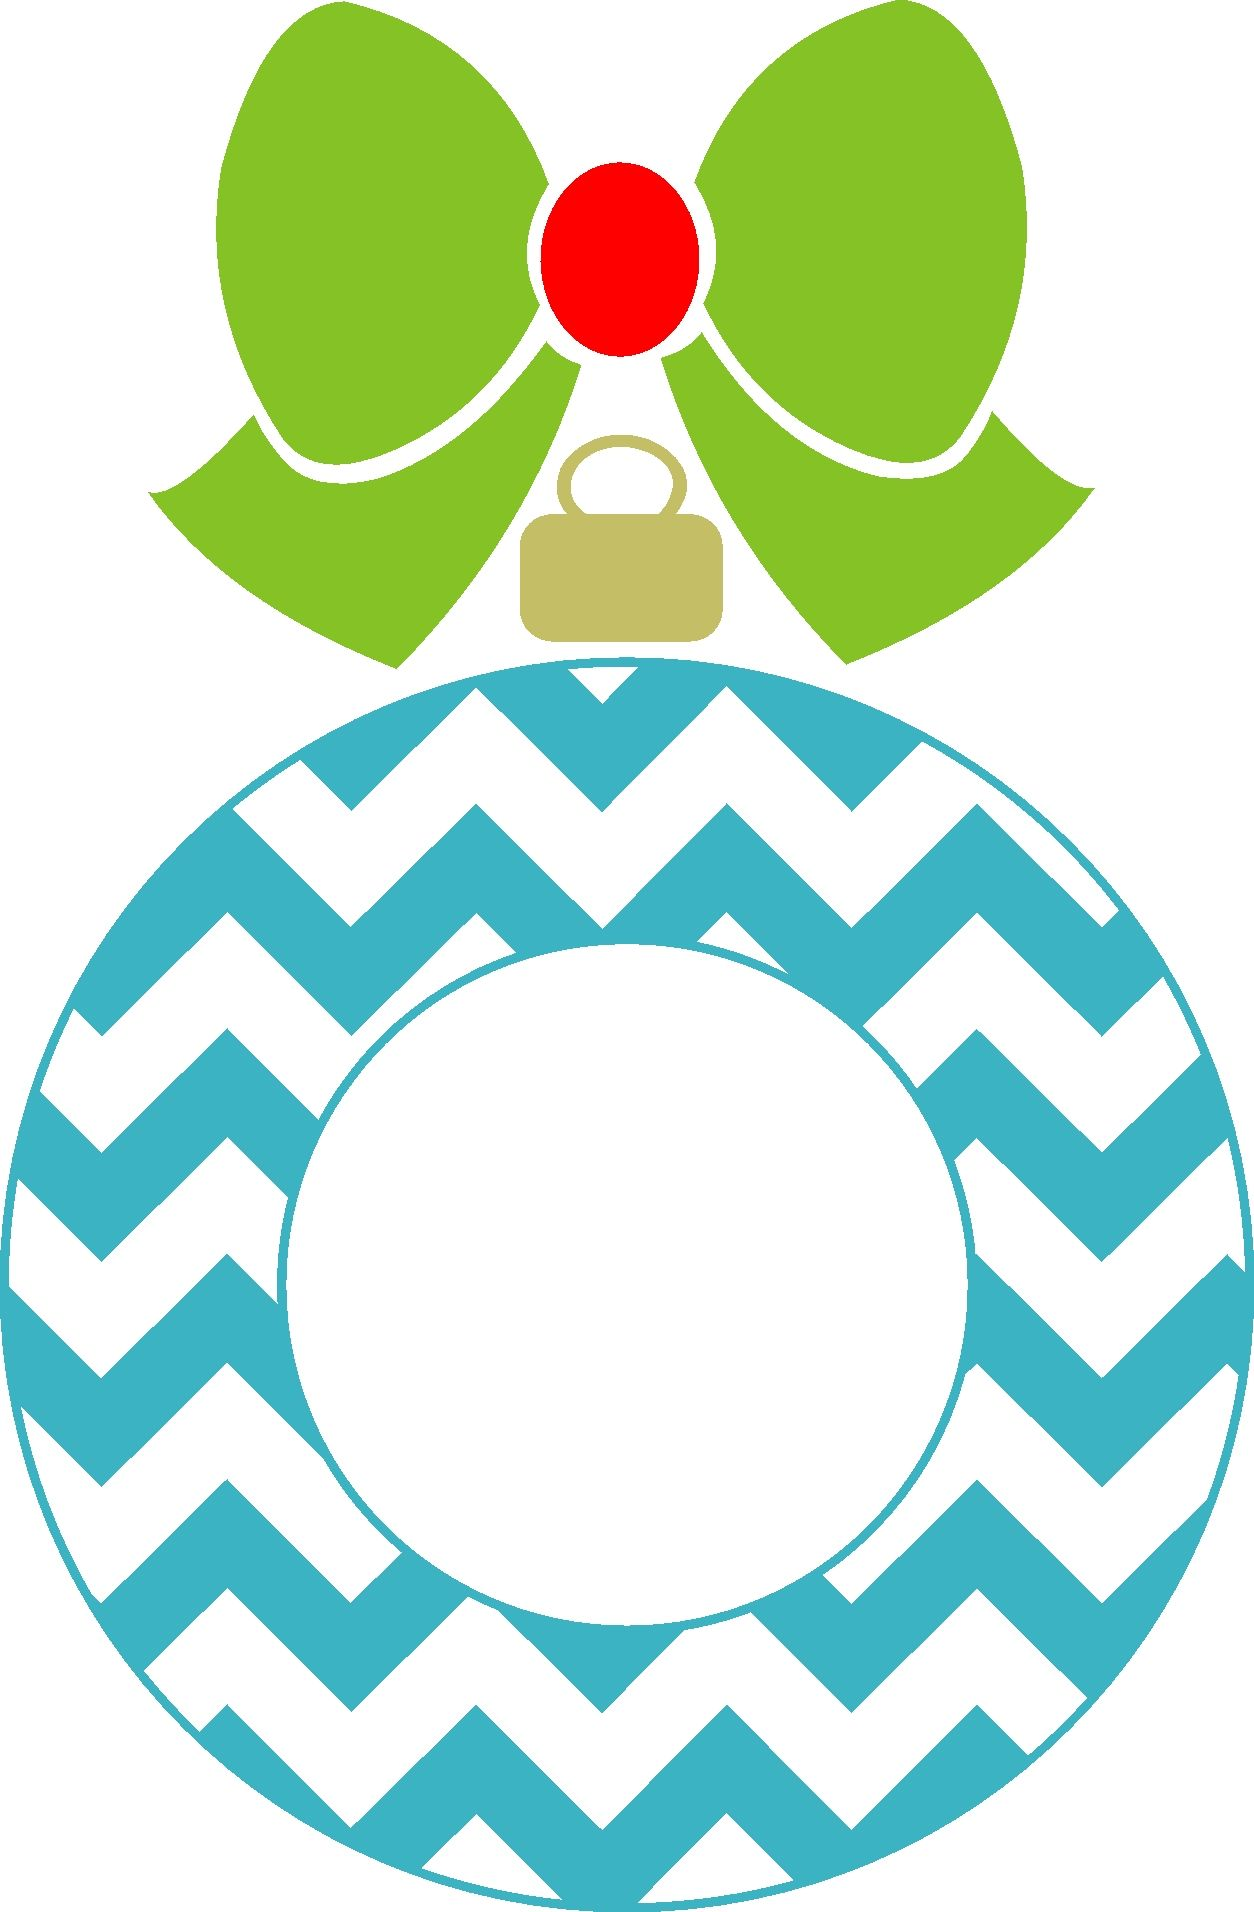 Chevron christmas ornament monogram frame silhouette